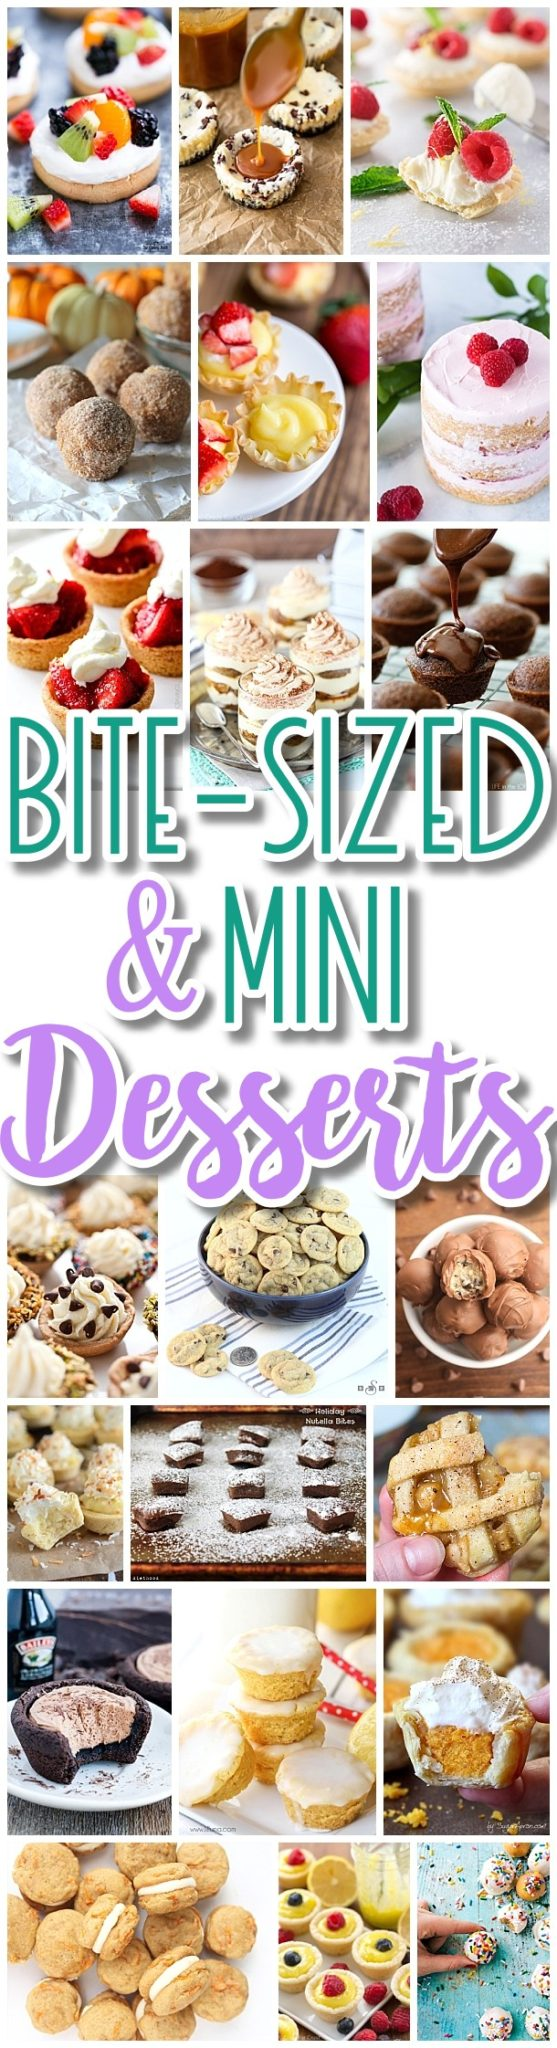 The BEST Bite Size Dessert Recipes - Mini, Individual, Yummy Treats, Perfectly Pretty for Your Baby and Bridal Showers, Birthday Party Dessert Tables - Holiday Celebrations! Dreaming in DIY